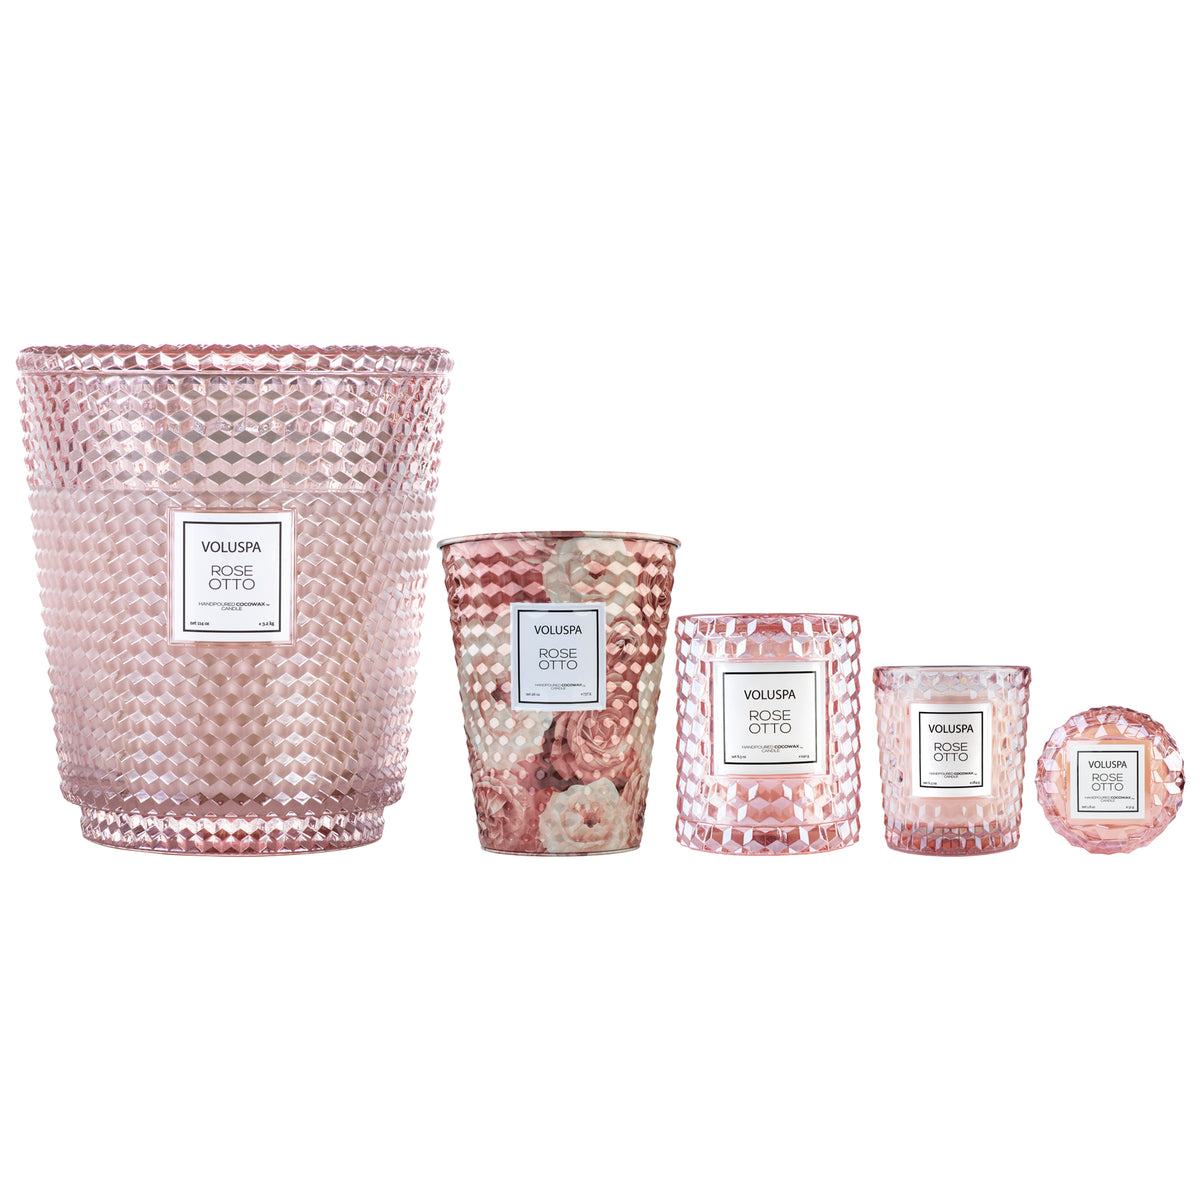 Rose Otto - 5 Wick Hearth Candle - 4